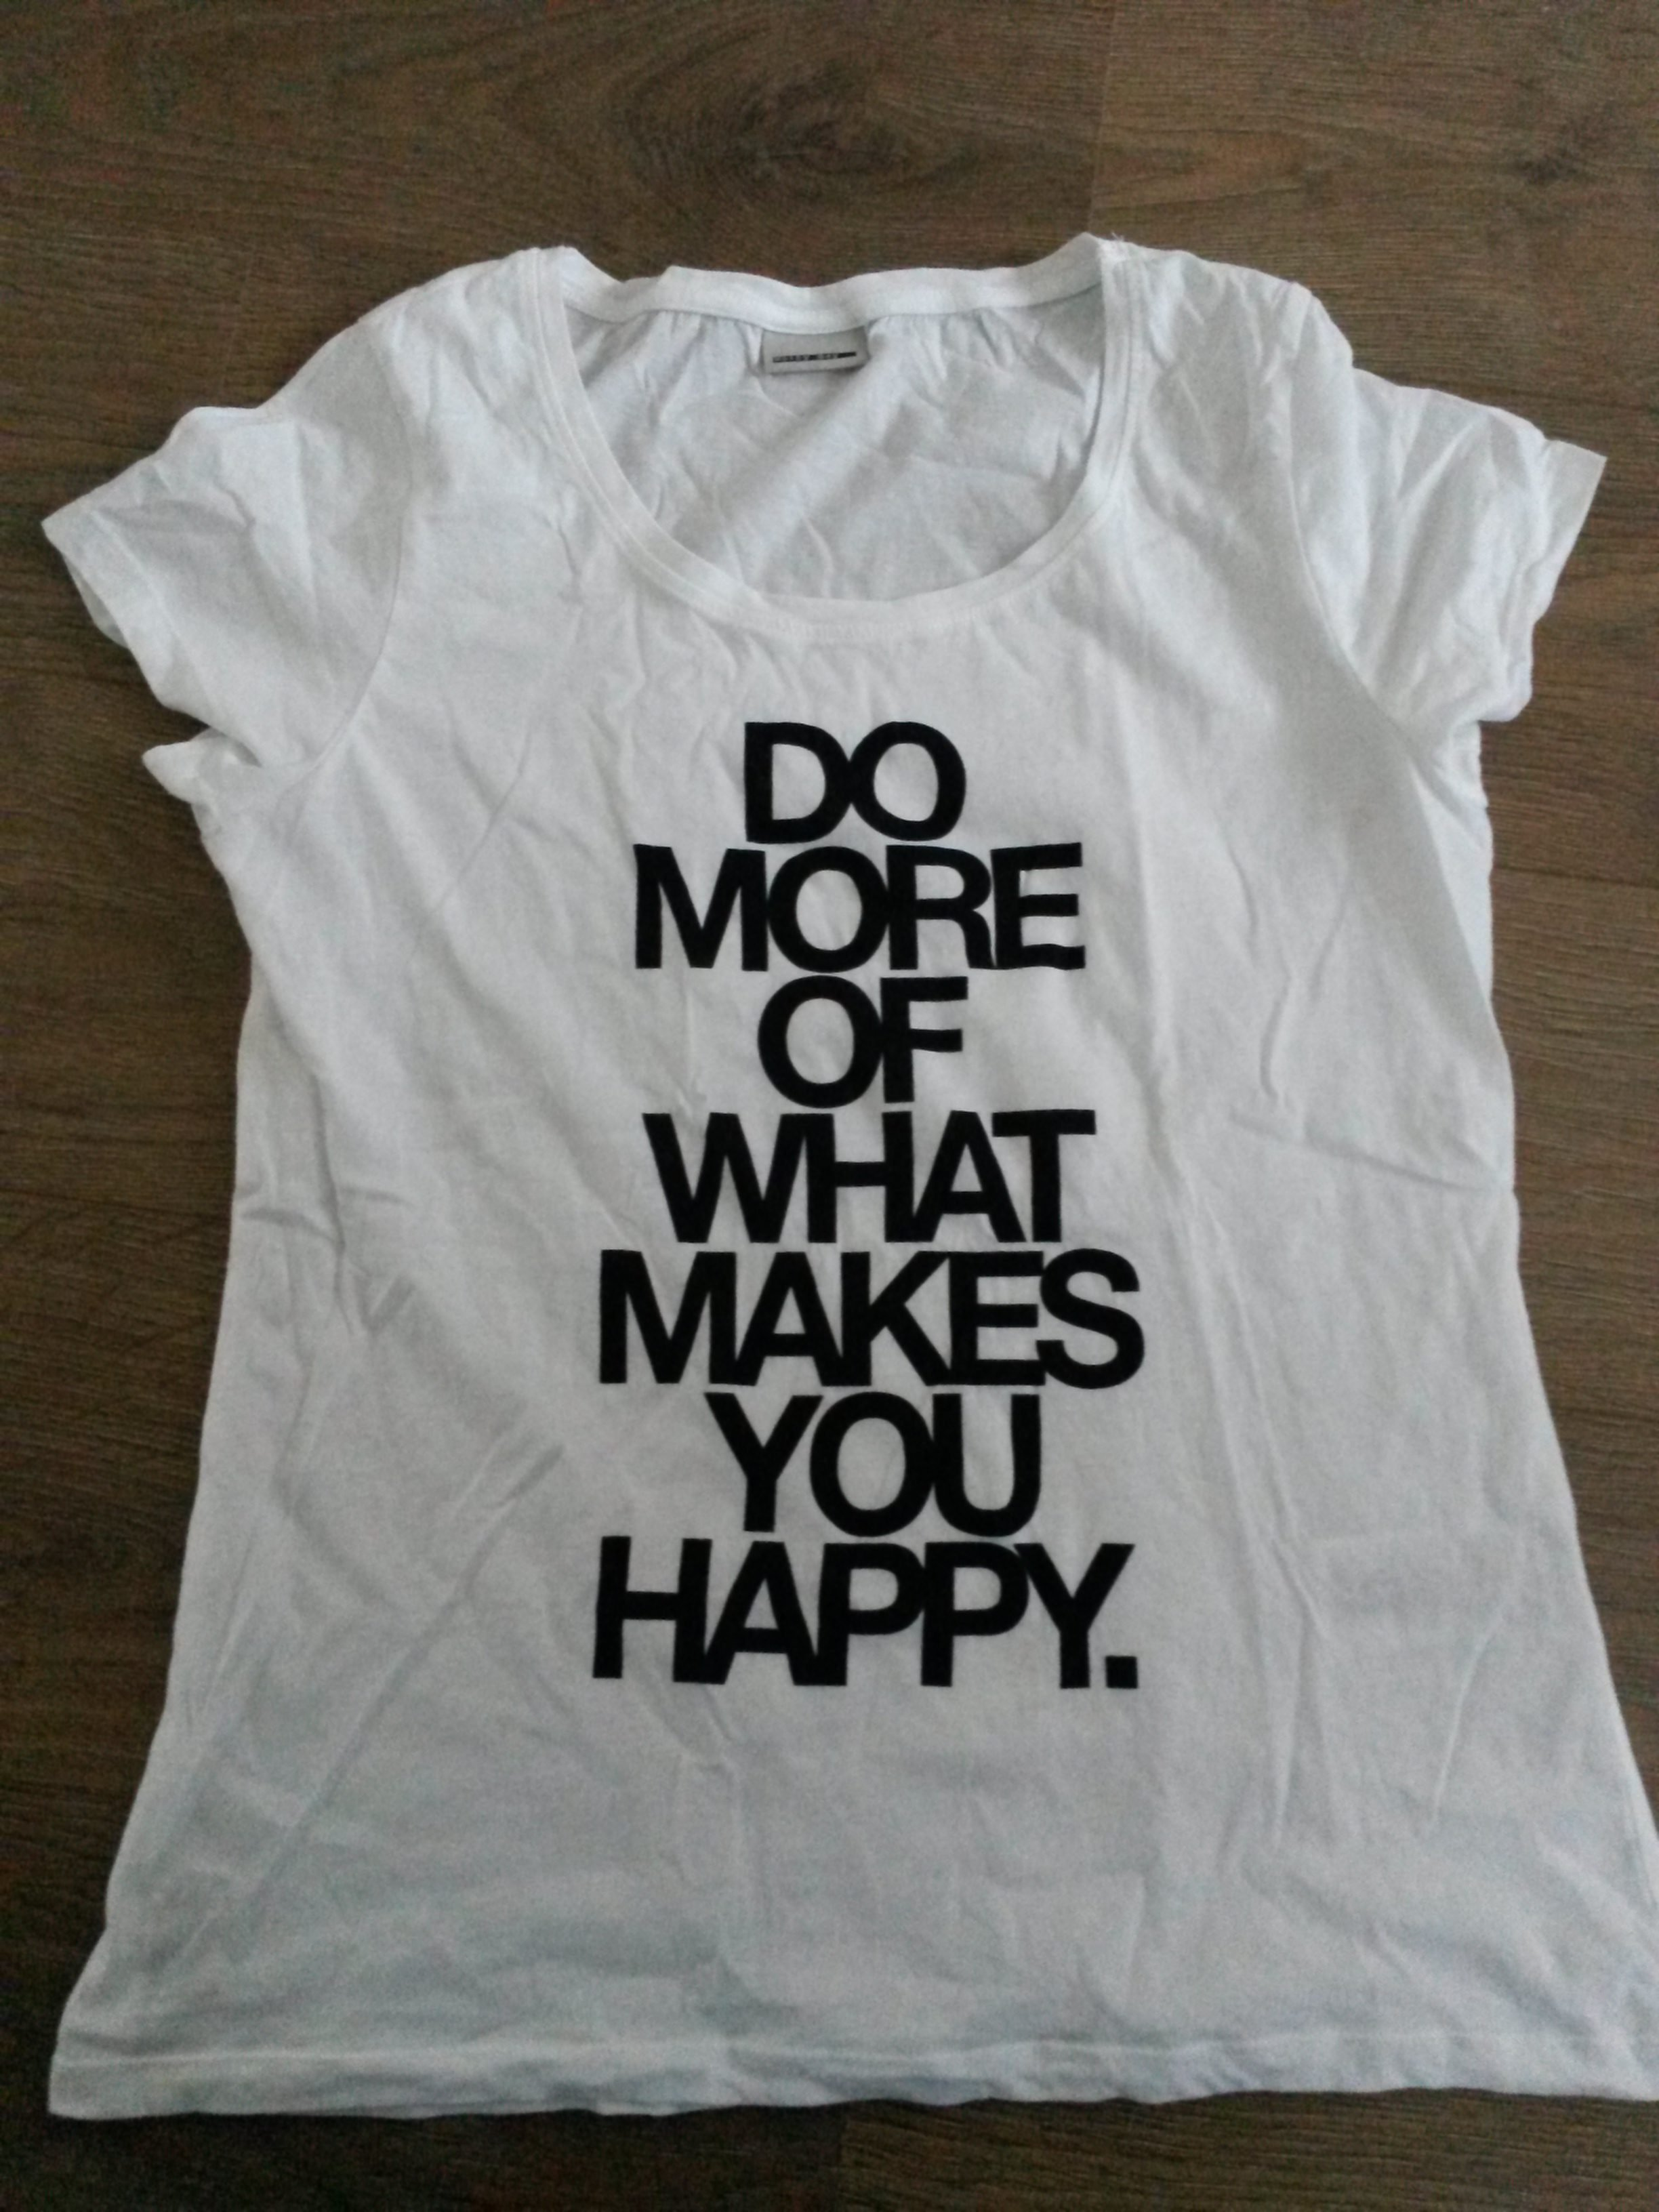 Do more of what makes you happy tshirt.jpg